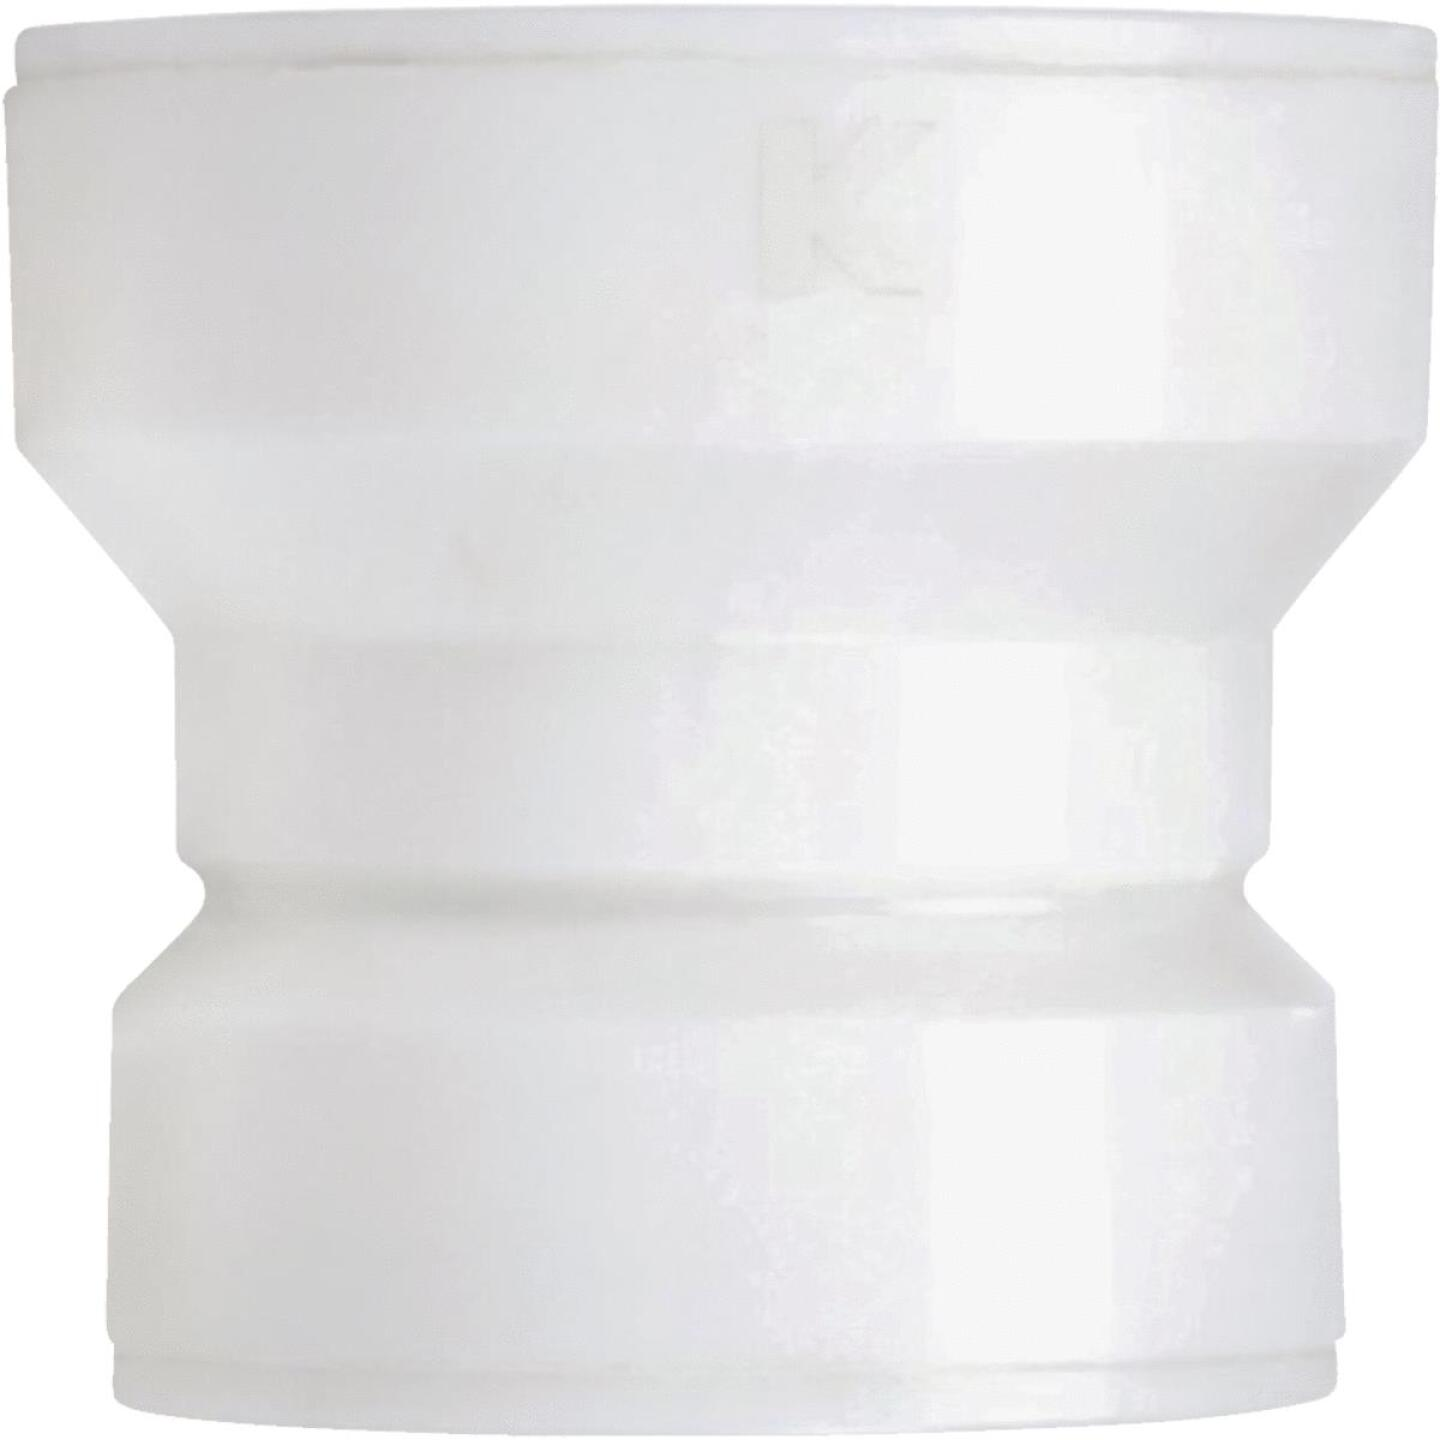 Keeney Insta-Plumb 1-1/2 In. x 1-1/2 In. White Plastic Trap Waste Adapter Image 1